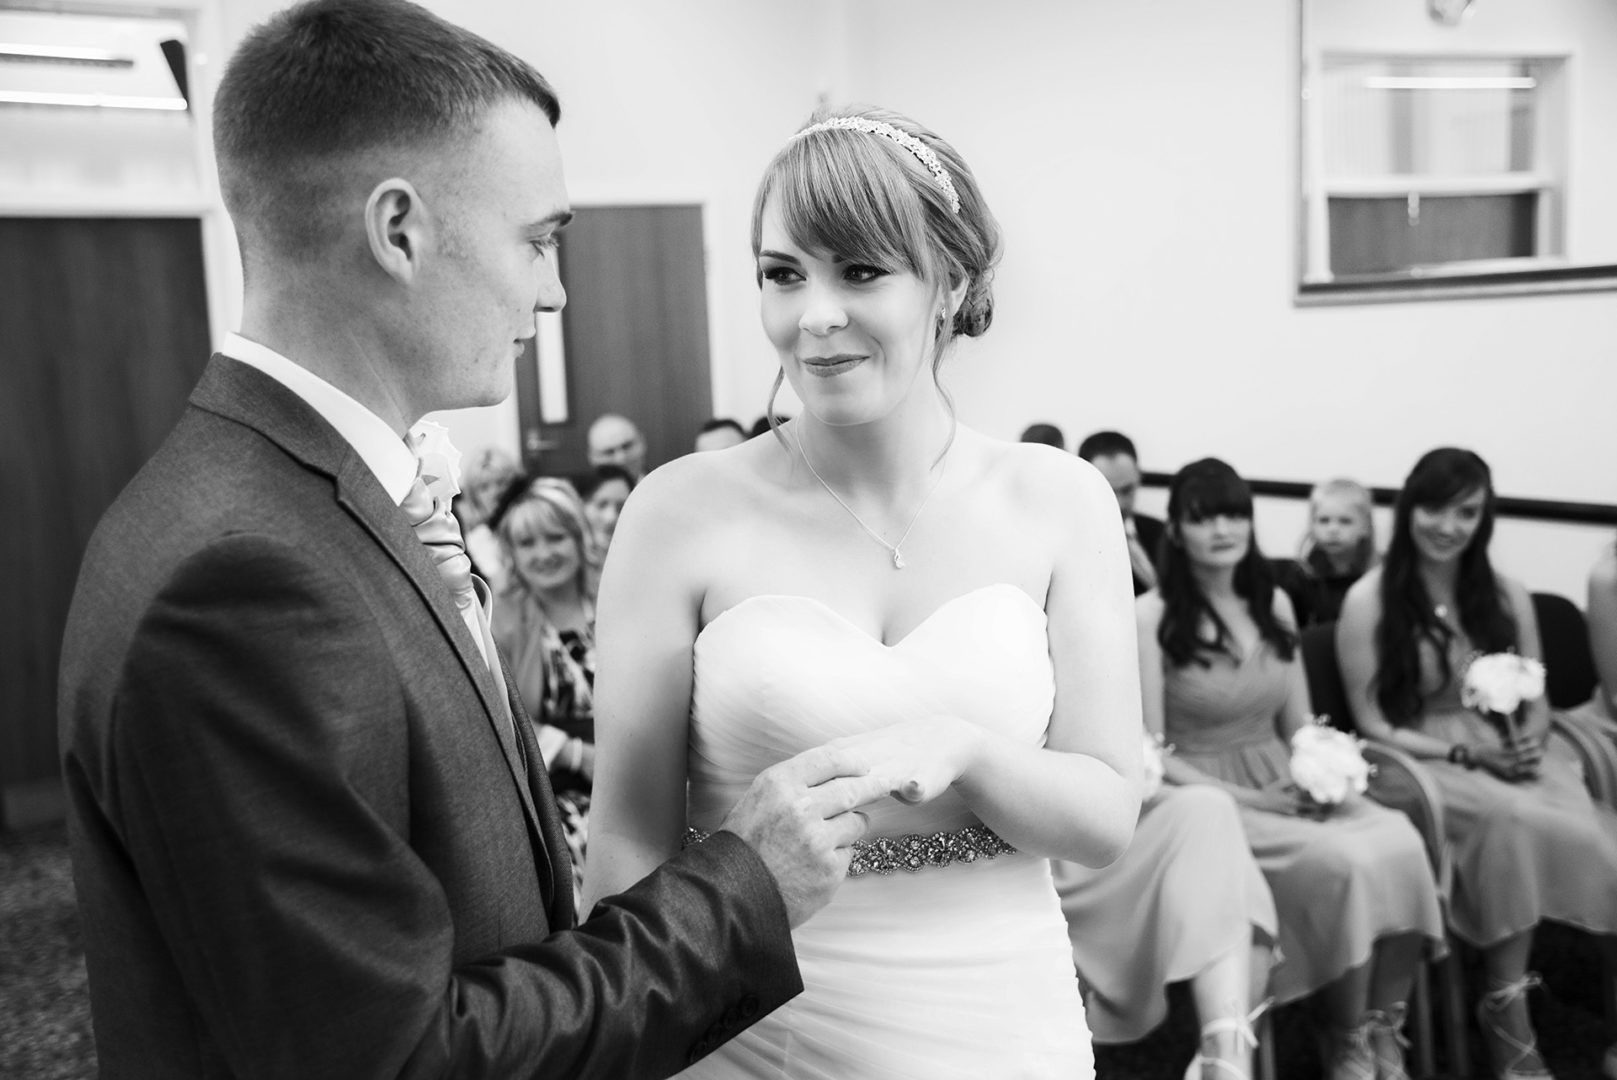 Nuneaton wedding photography by AJTImages at Nuneaton Register Office